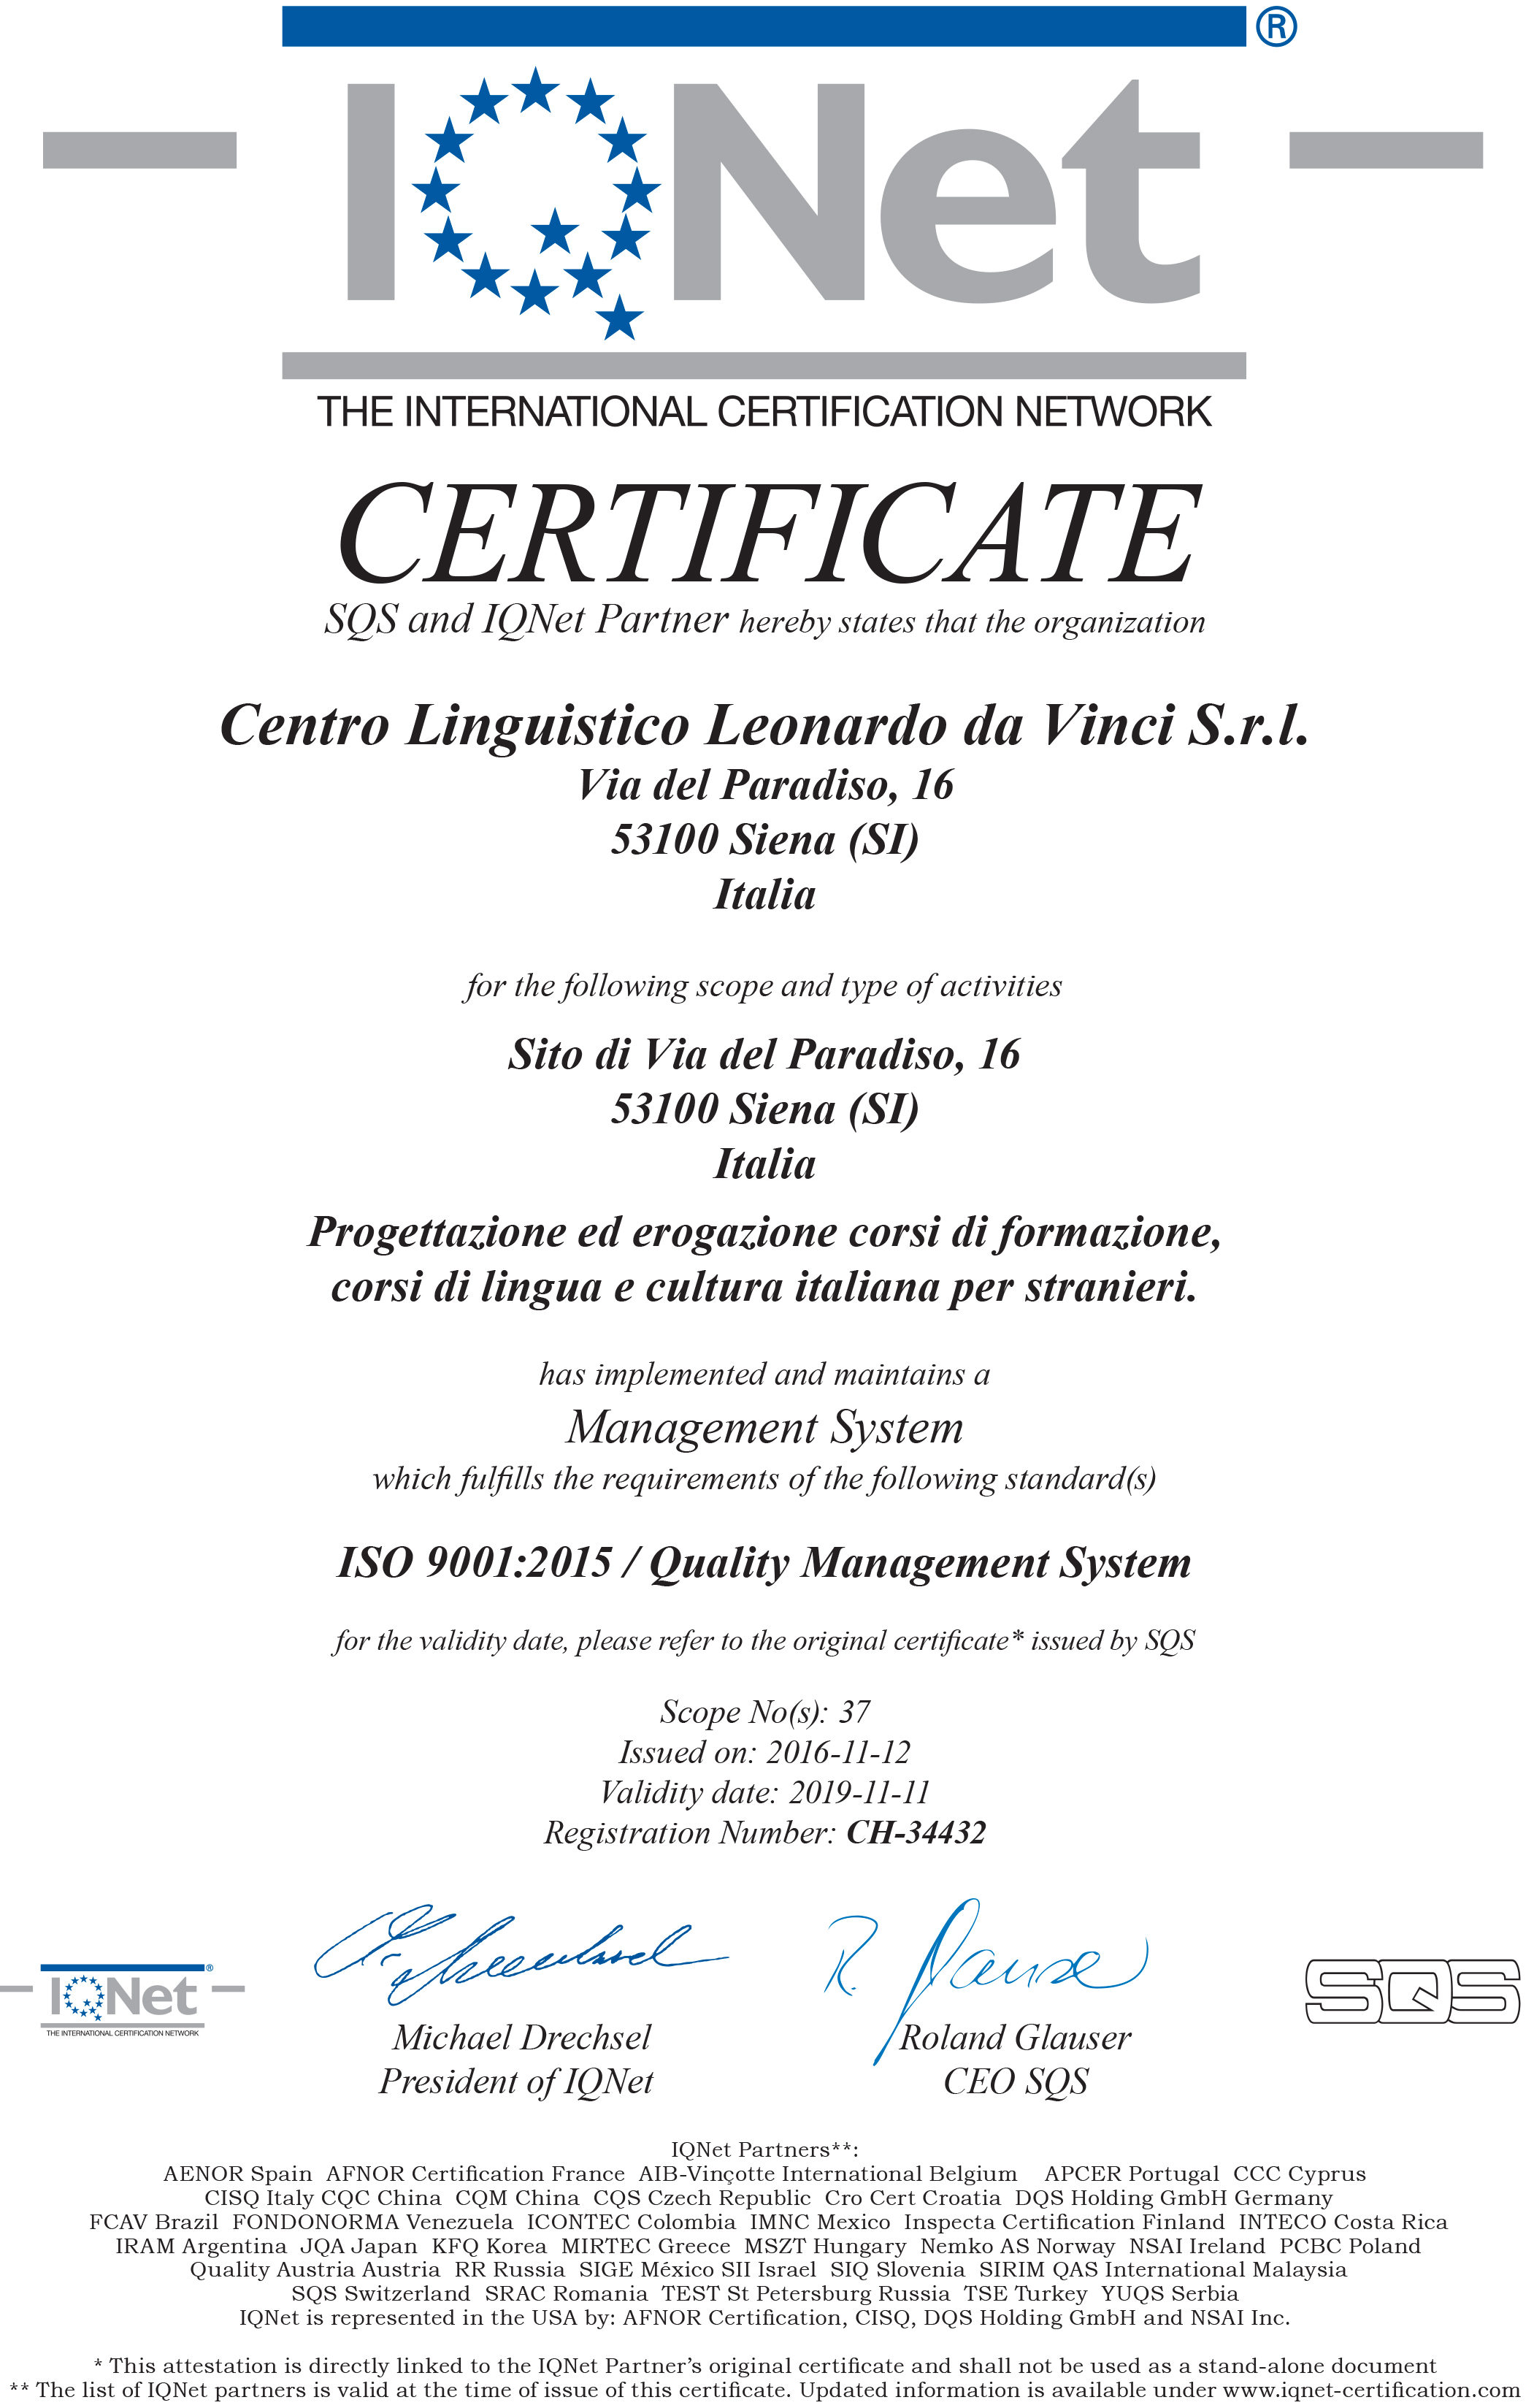 Our Italian school in Siena is certified to meet ISO 9001:2015, the internationally recognized standard for quality management systems